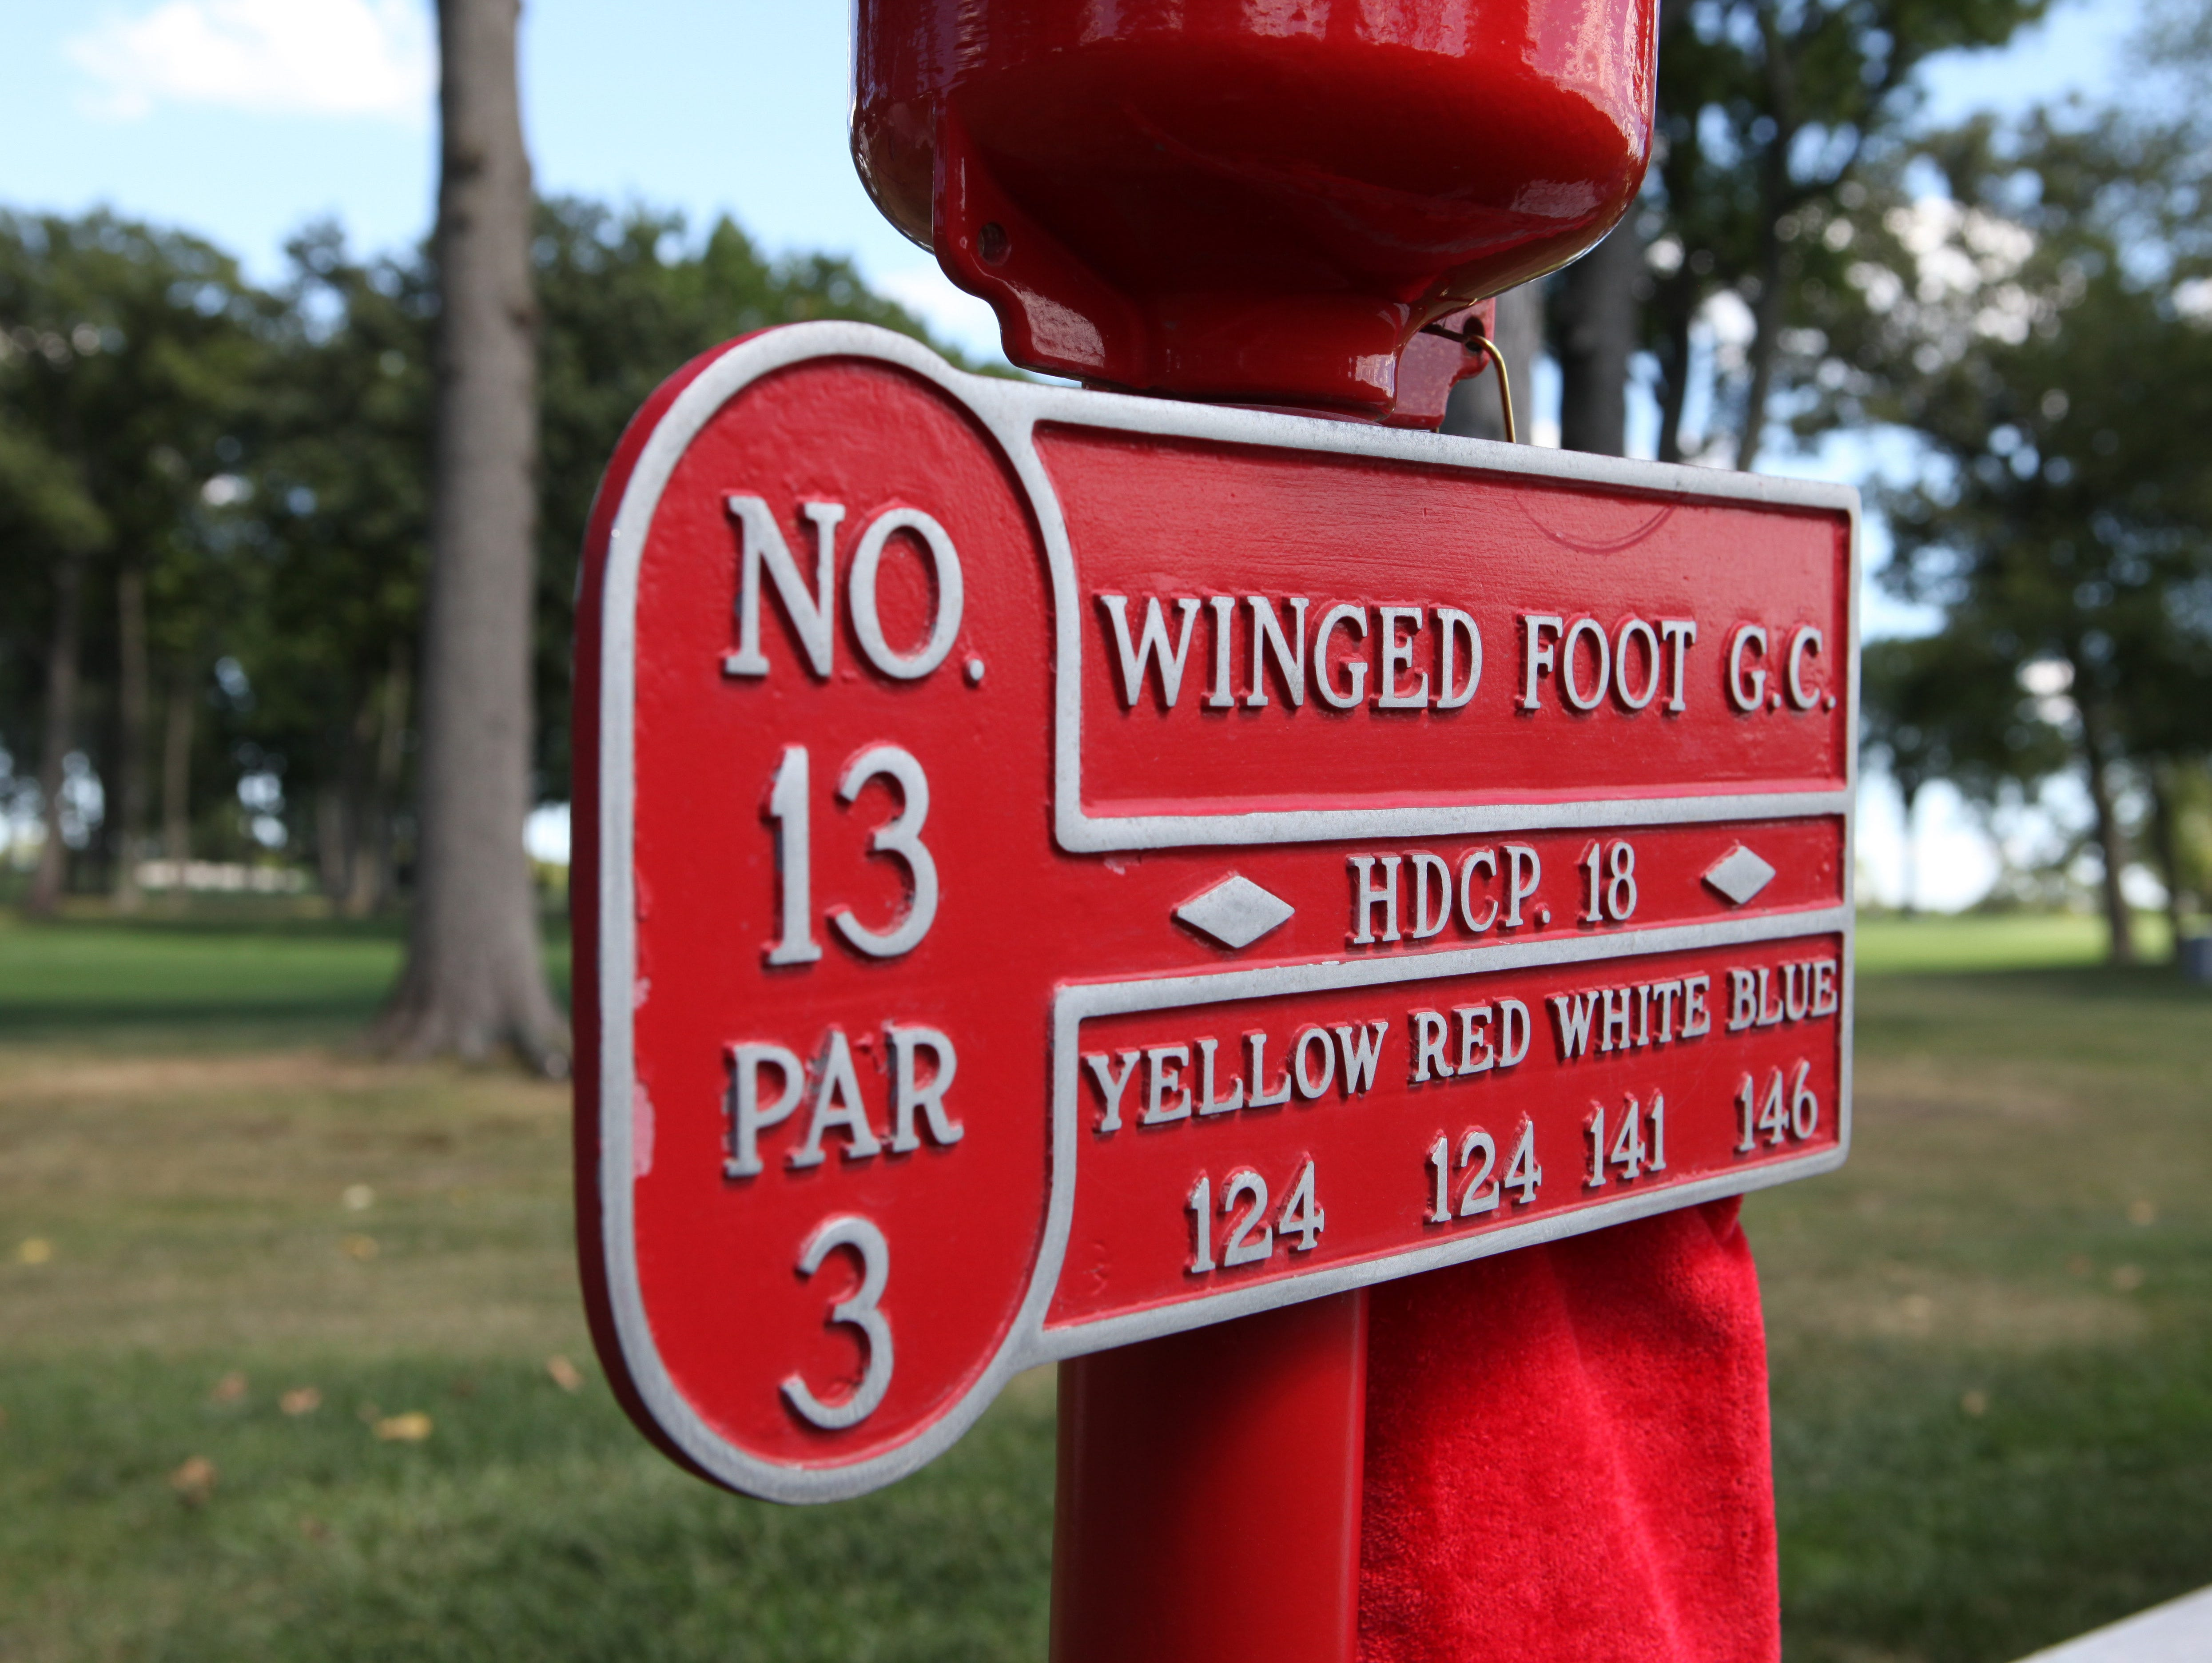 The hole marker for the 13th hole on the East Course at the Winged Foot Golf Club in Mamaroneck, Aug. 13, 2015. The East Course, recently restored, is hosting the USGA Four-Ball Championship next spring.